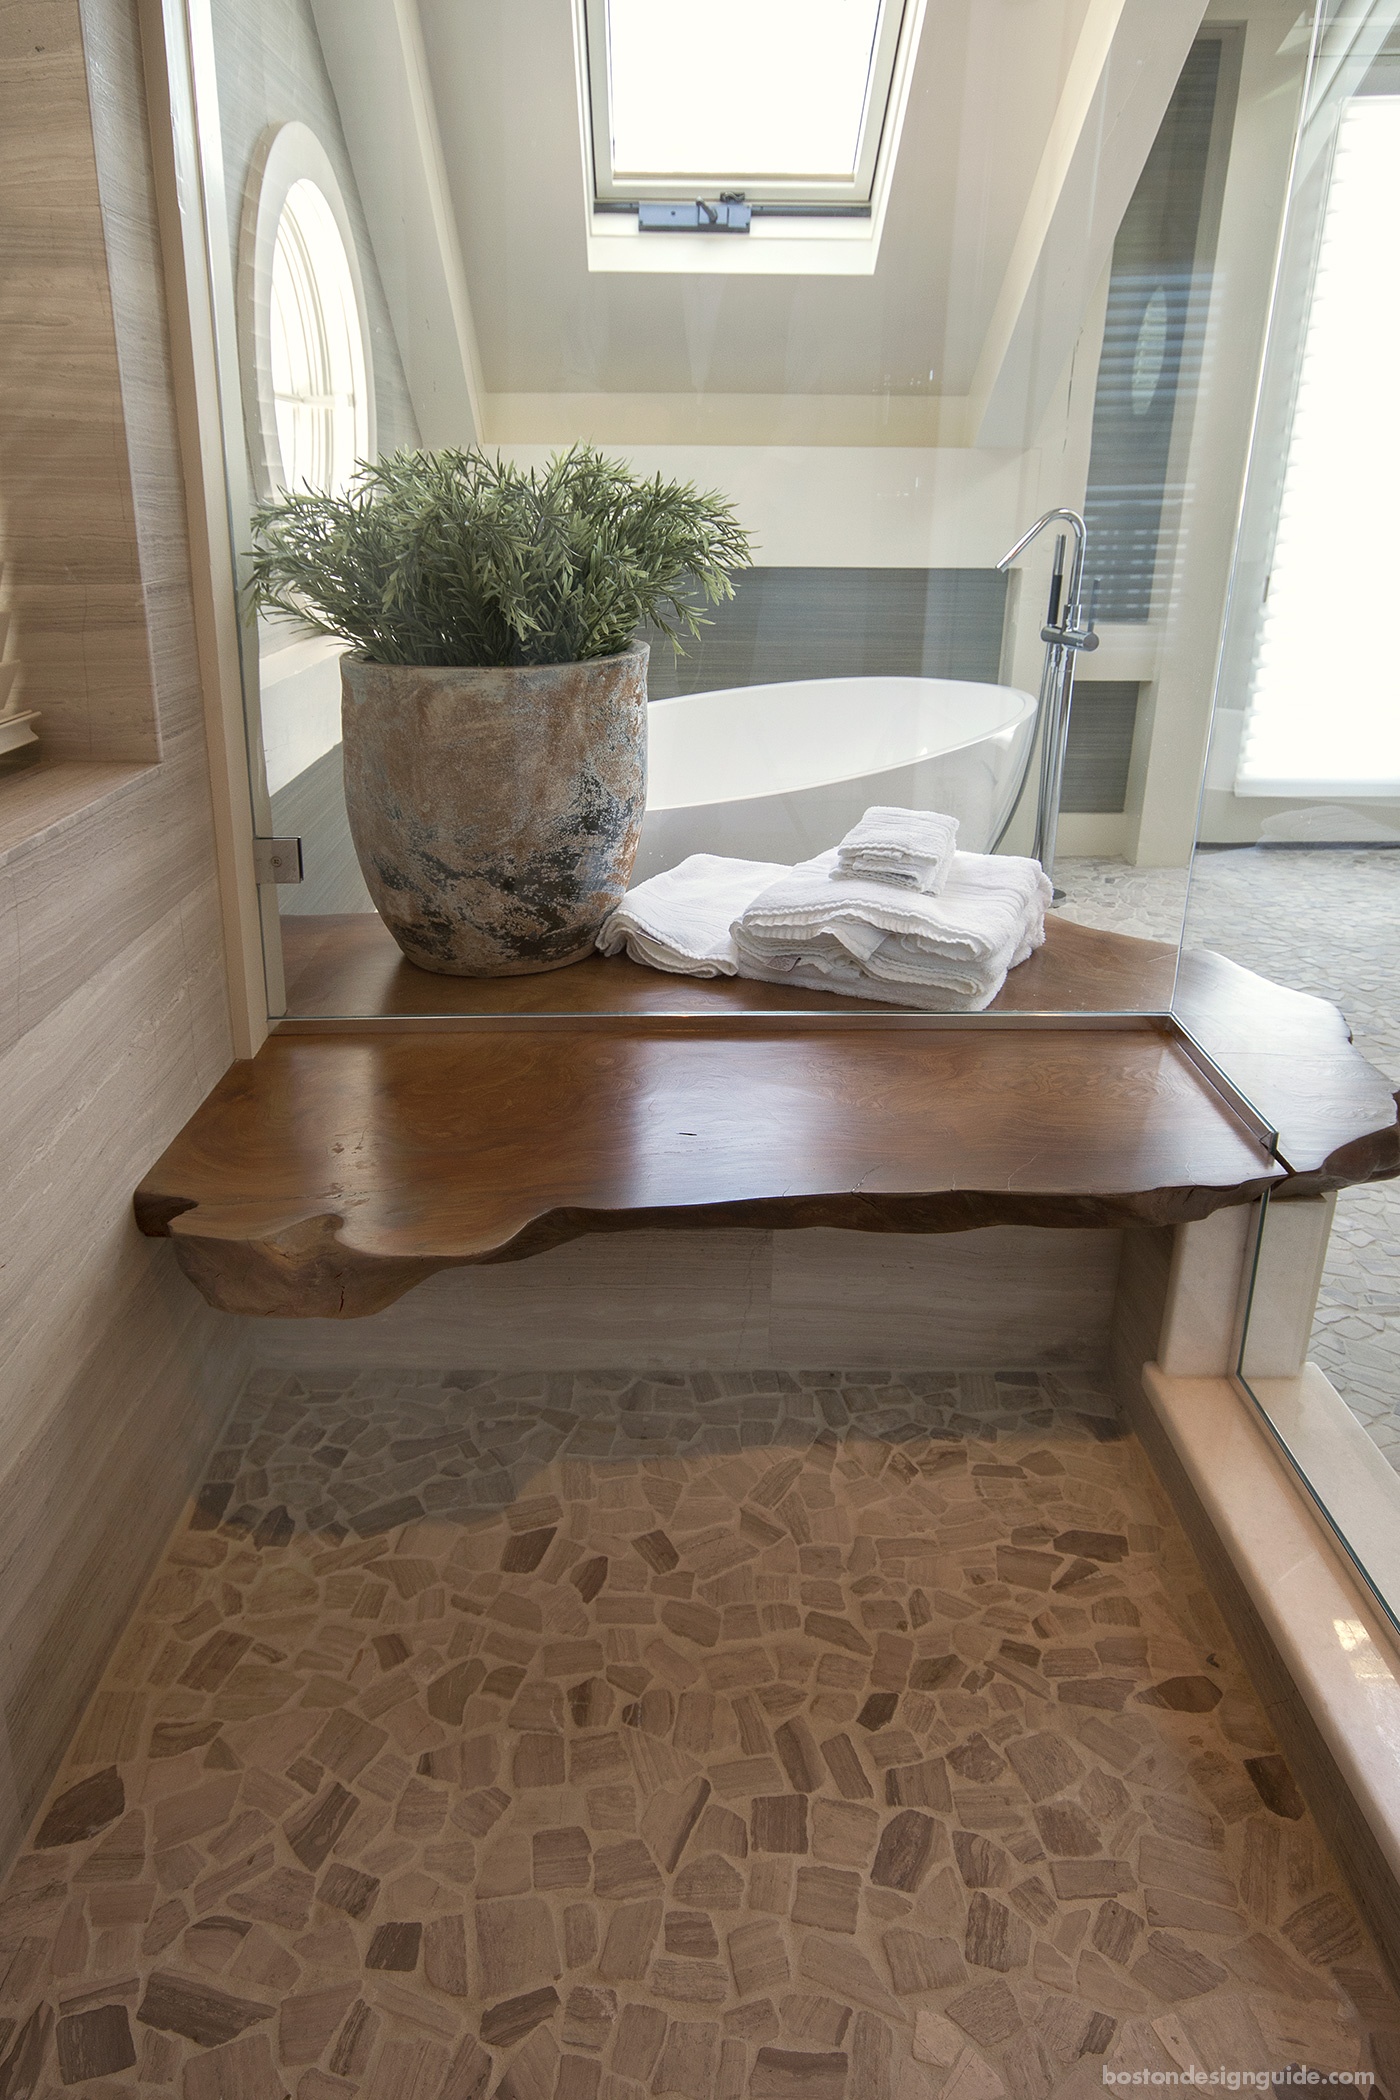 Redwood shower bench